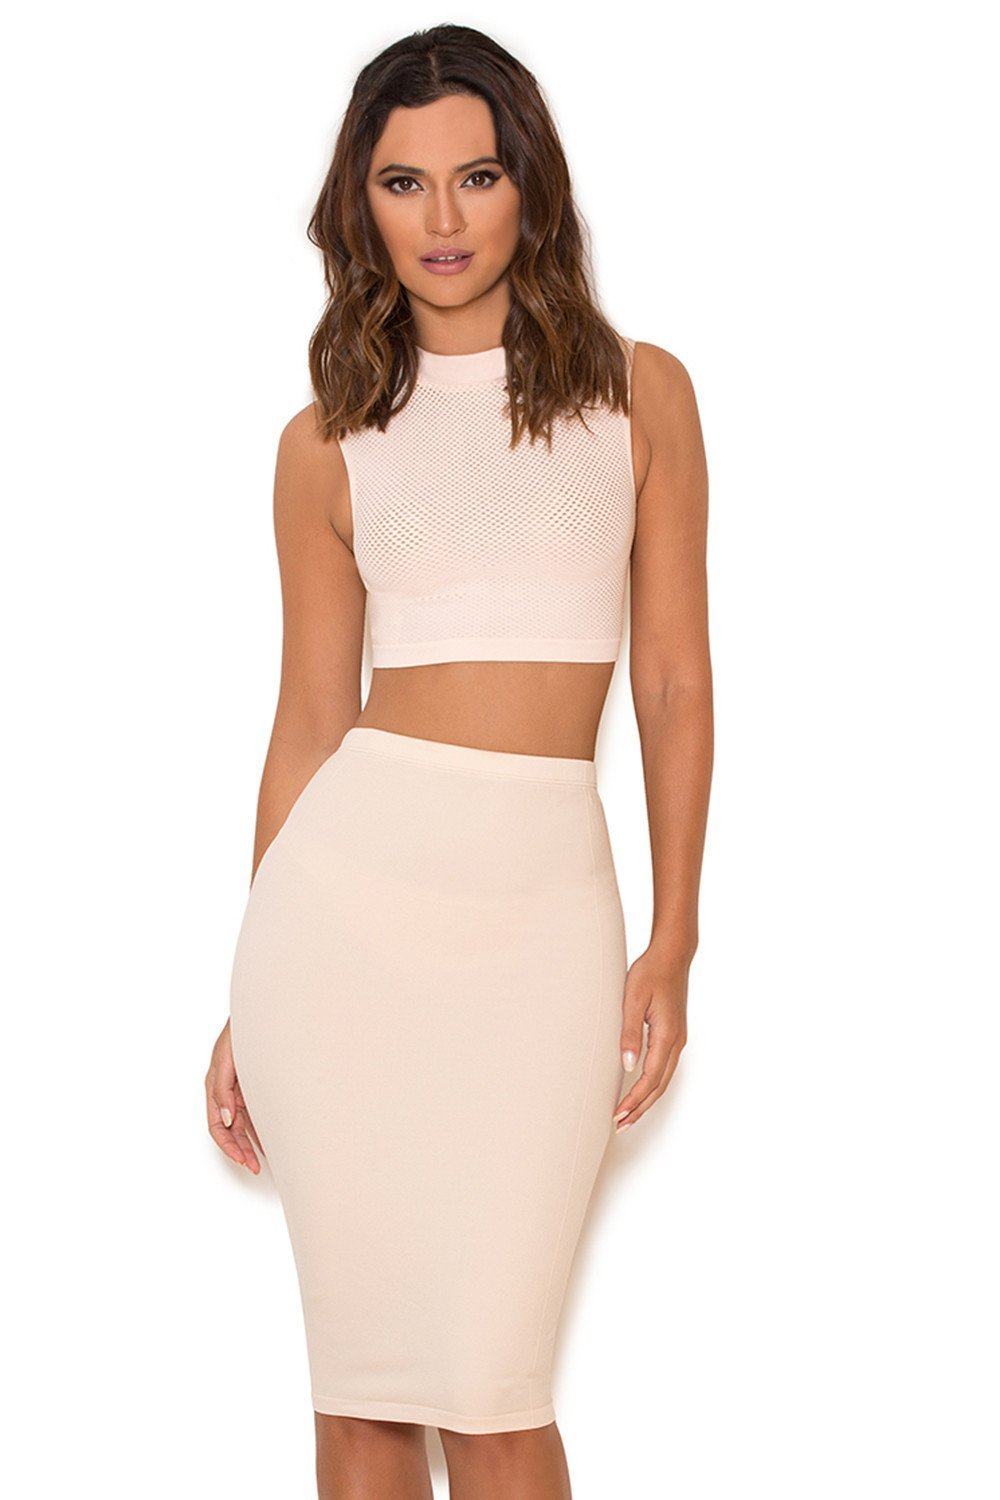 Nude Seamless Knit Pencil Skirt